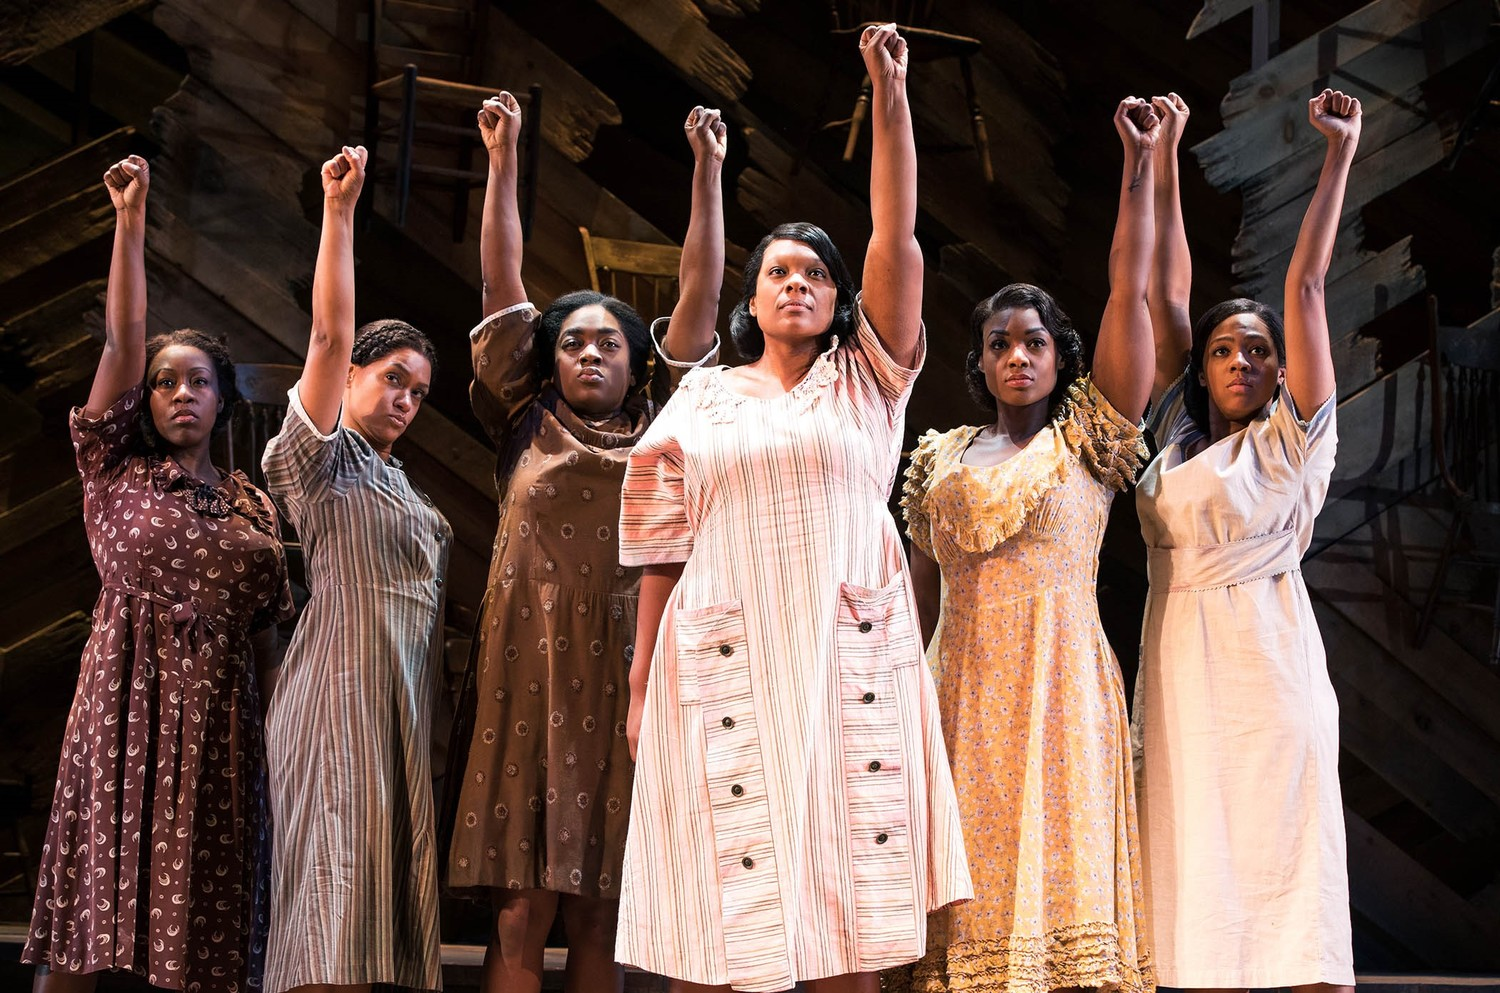 BWW Review: THE COLOR PURPLE at The Fisher Theatre is a Powerful and Emotion-Filled Production!